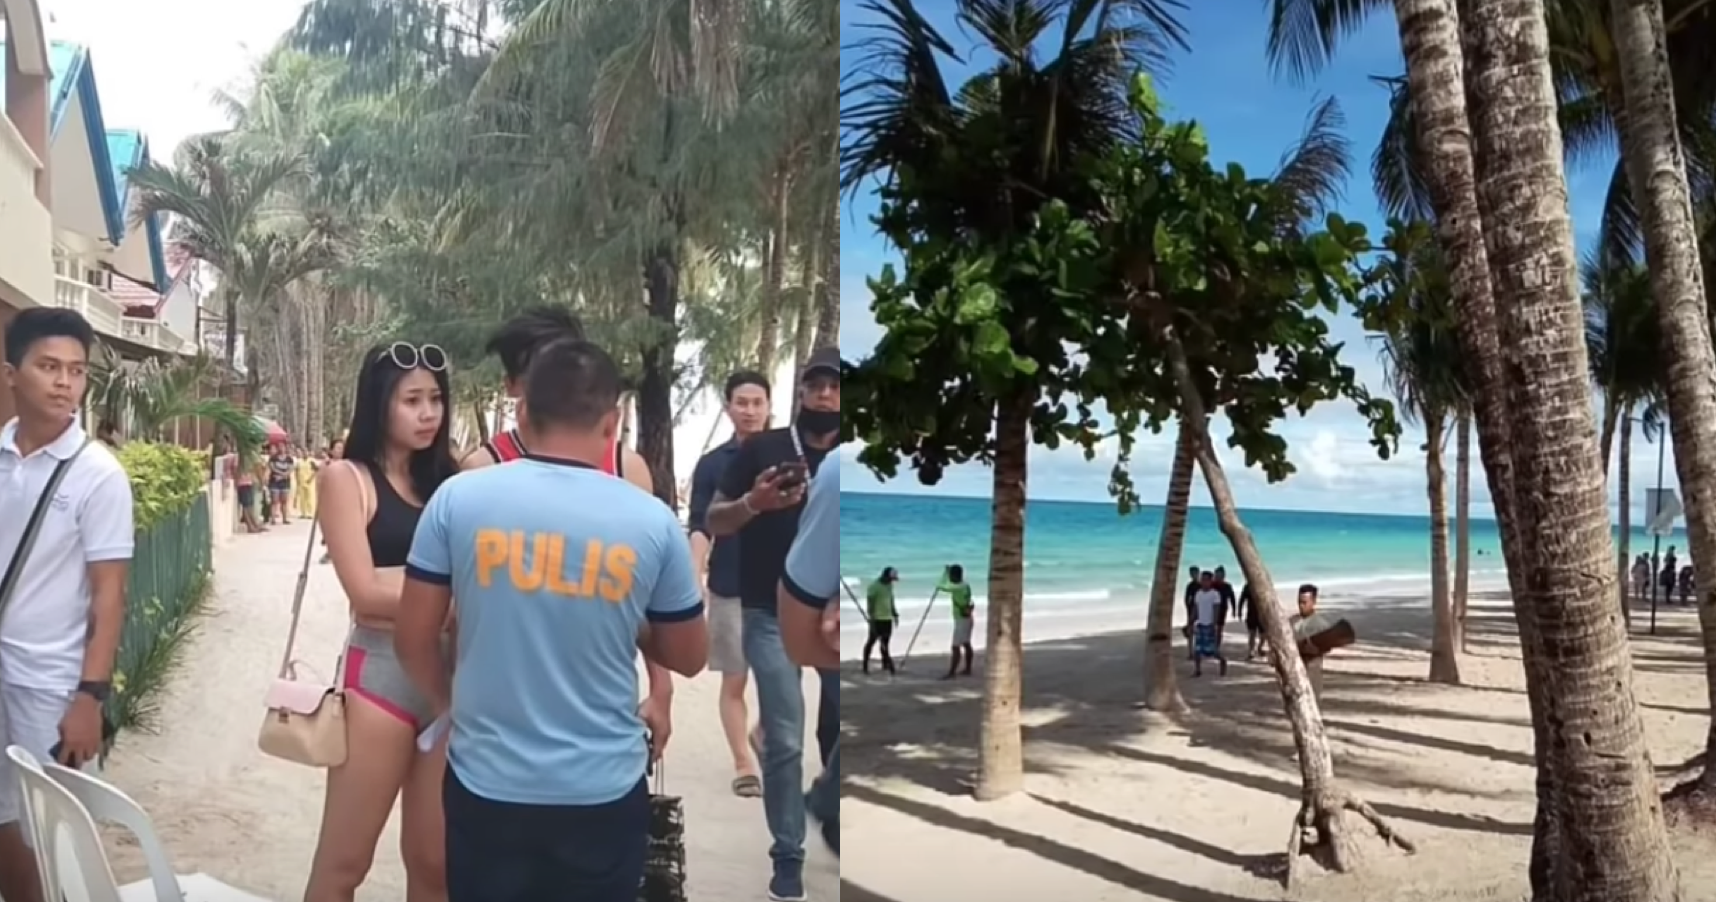 Boyfriend of Taiwanese tourist in 'string' bikini tells people to not share her photos, personal details